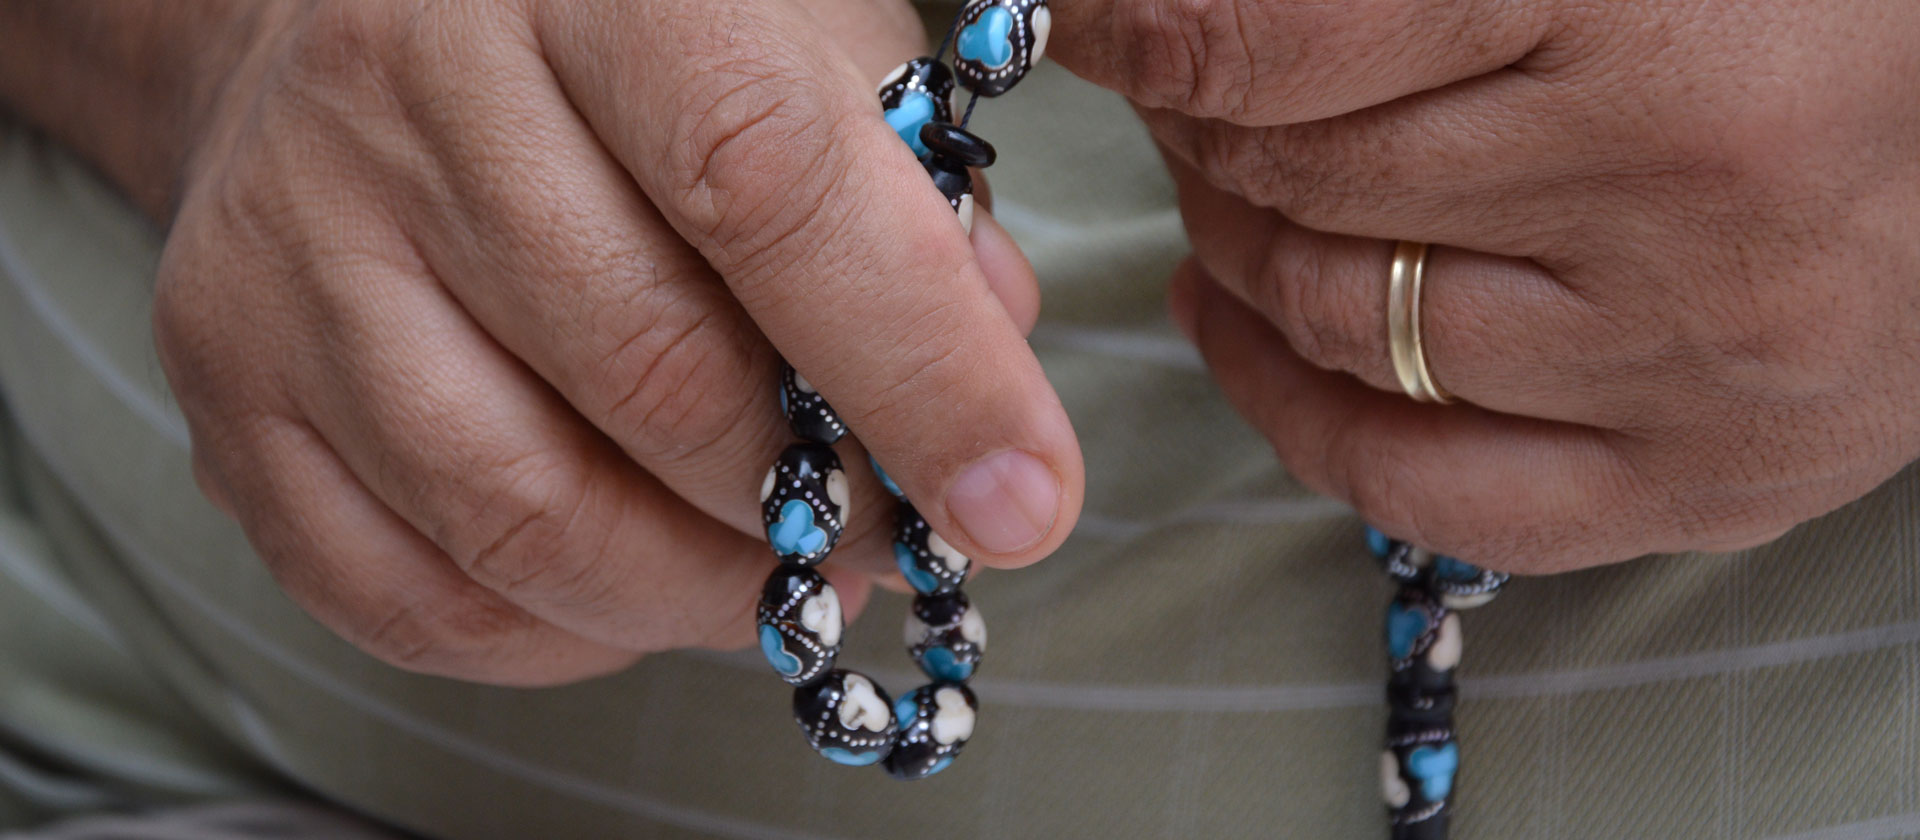 Hands praying rosary